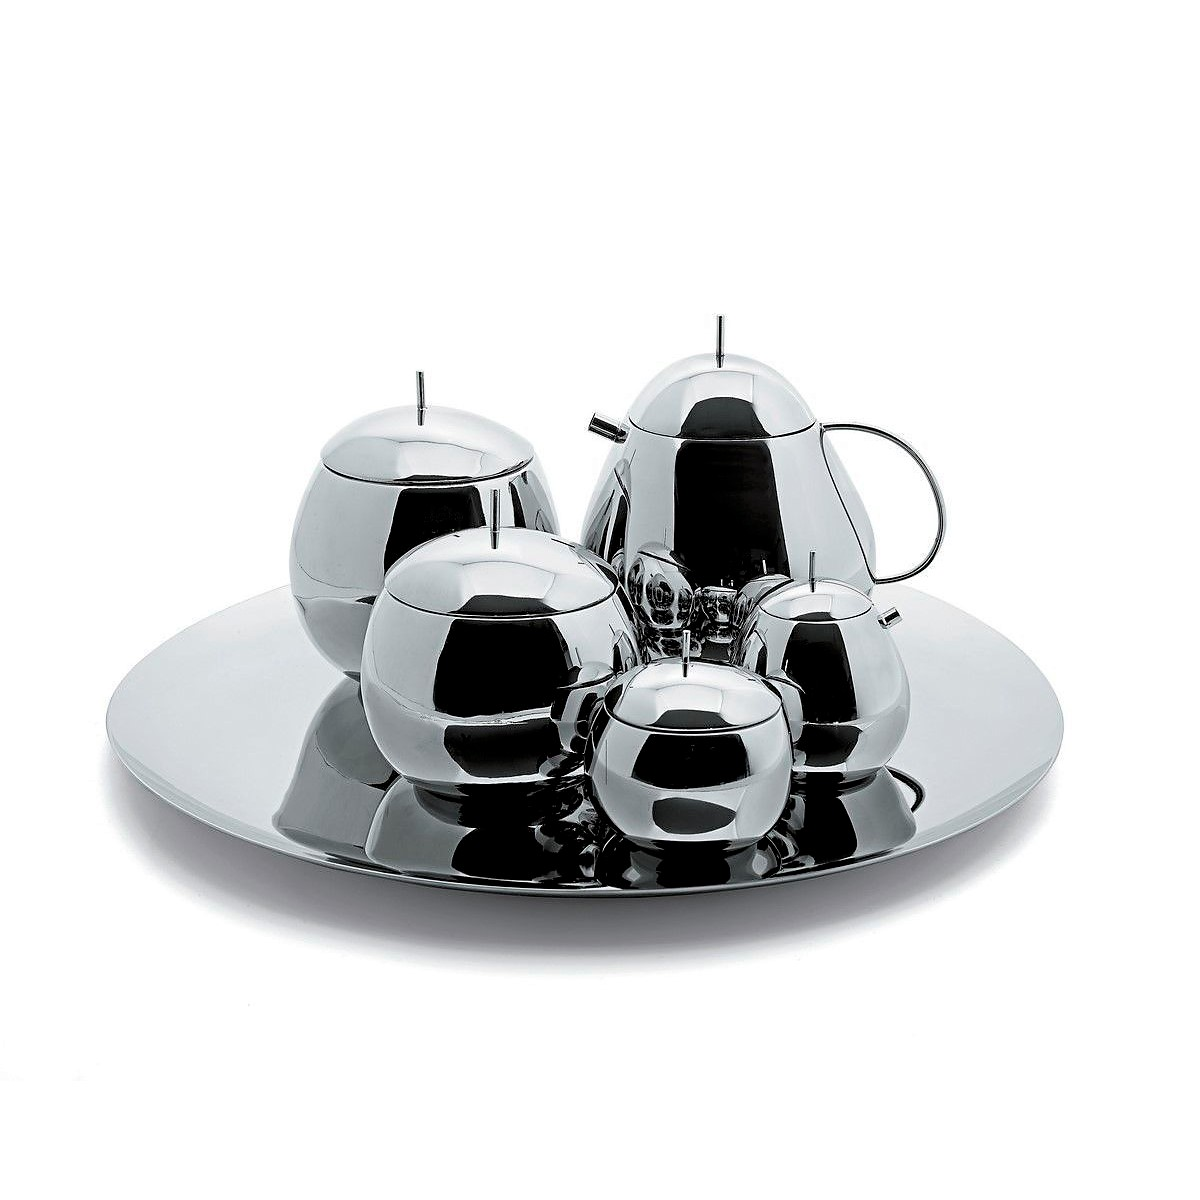 Officina Alessi - Sanaa Fruit Teapot, Sanna Fruit Set sugar bowl and creamer, sanna fruit creamer sanna fruit kitchen box and sanna fruit round tray